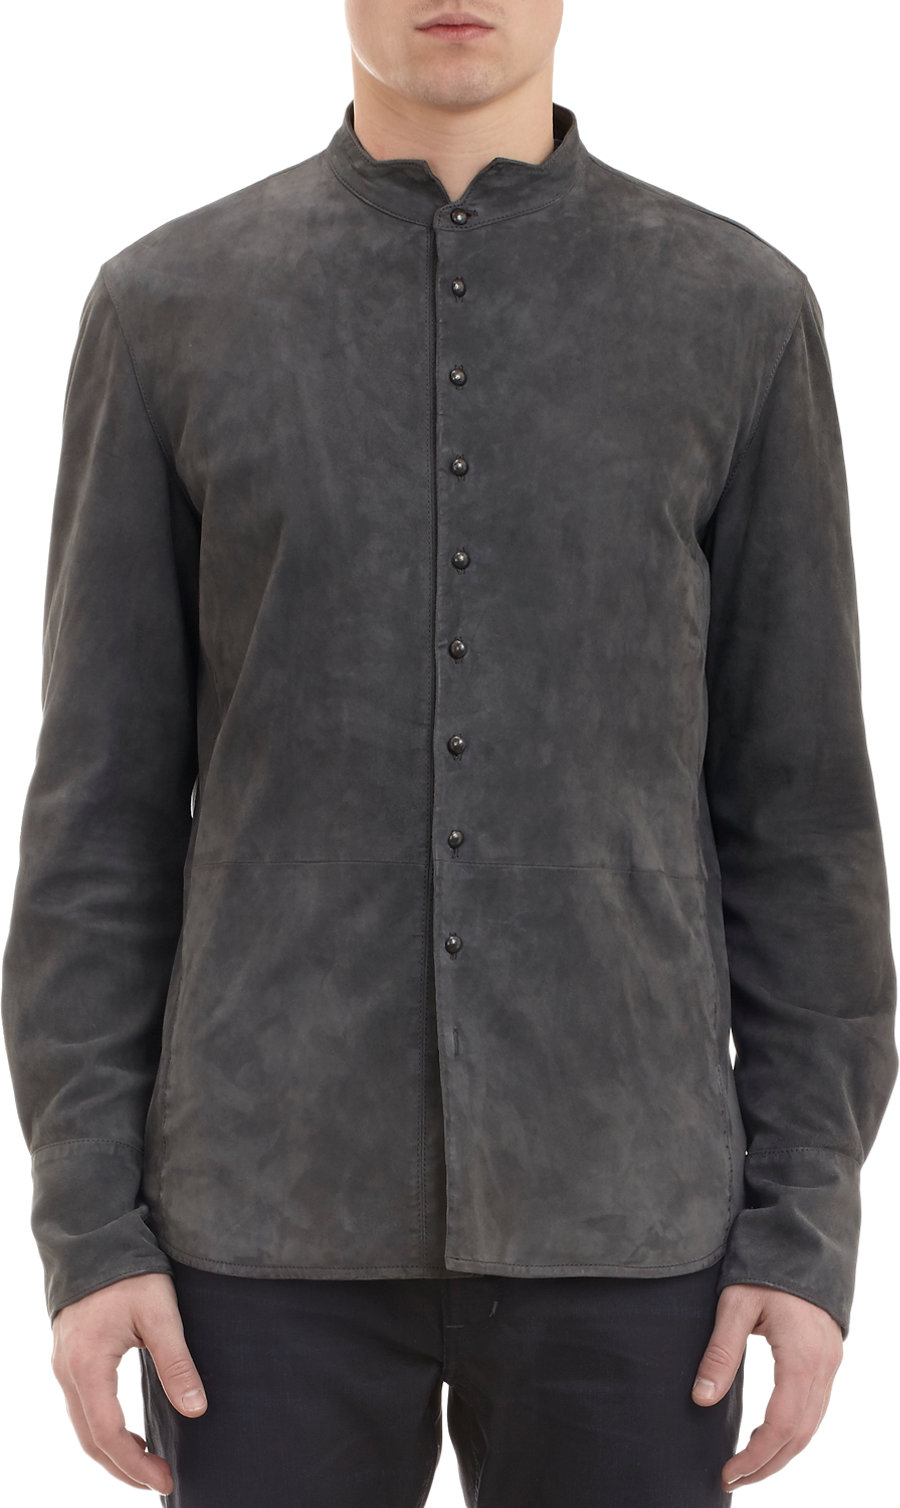 john varvatos suede shirt jacket in gray for men grey lyst